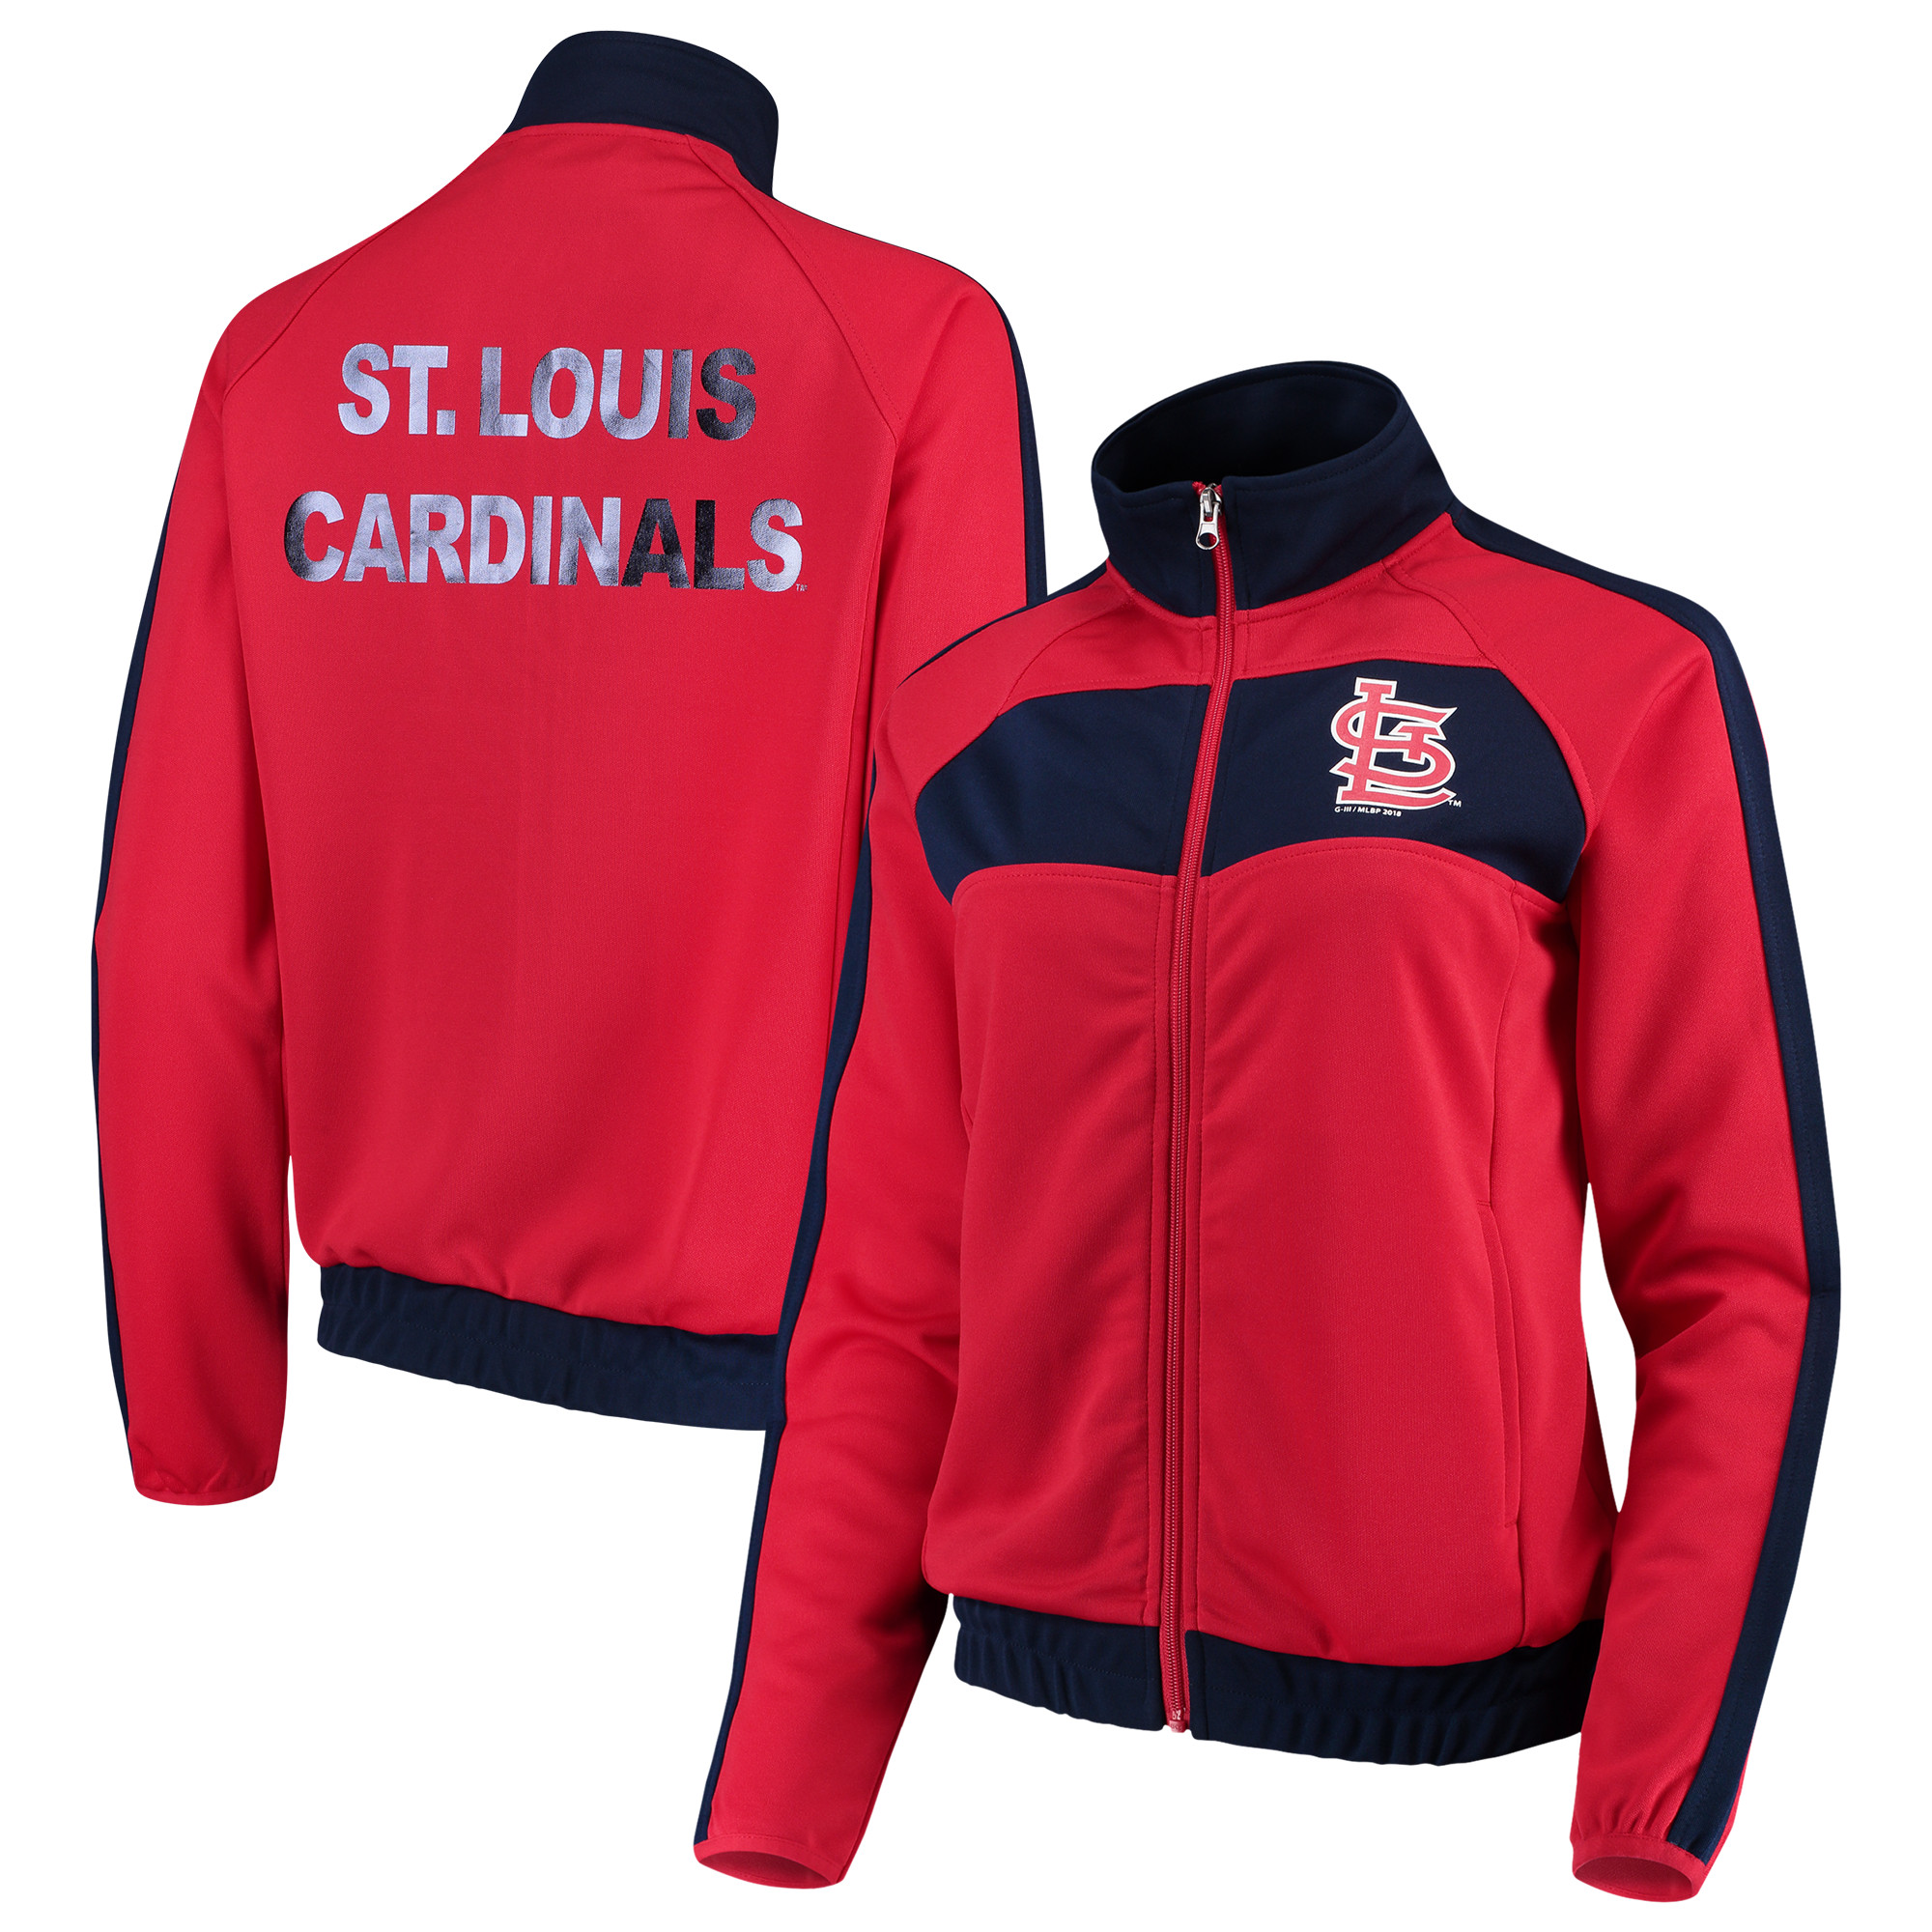 St. Louis Cardinals G-III 4Her by Carl Banks Women's Punt Track Jacket - Red/Navy